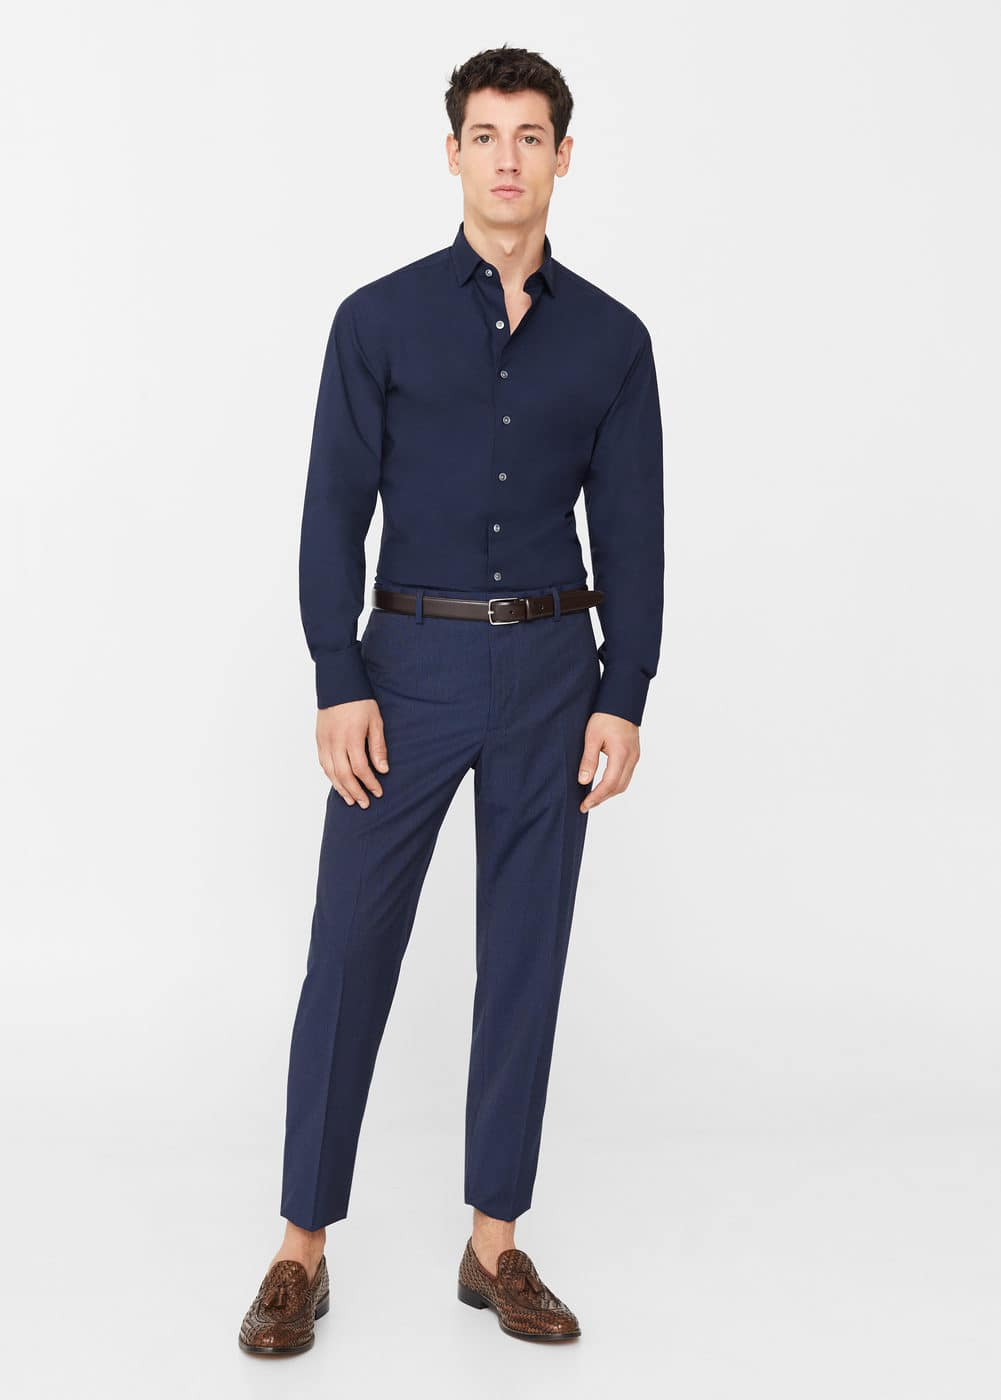 Slim fit tailored-hemd, baumwolle | MANGO